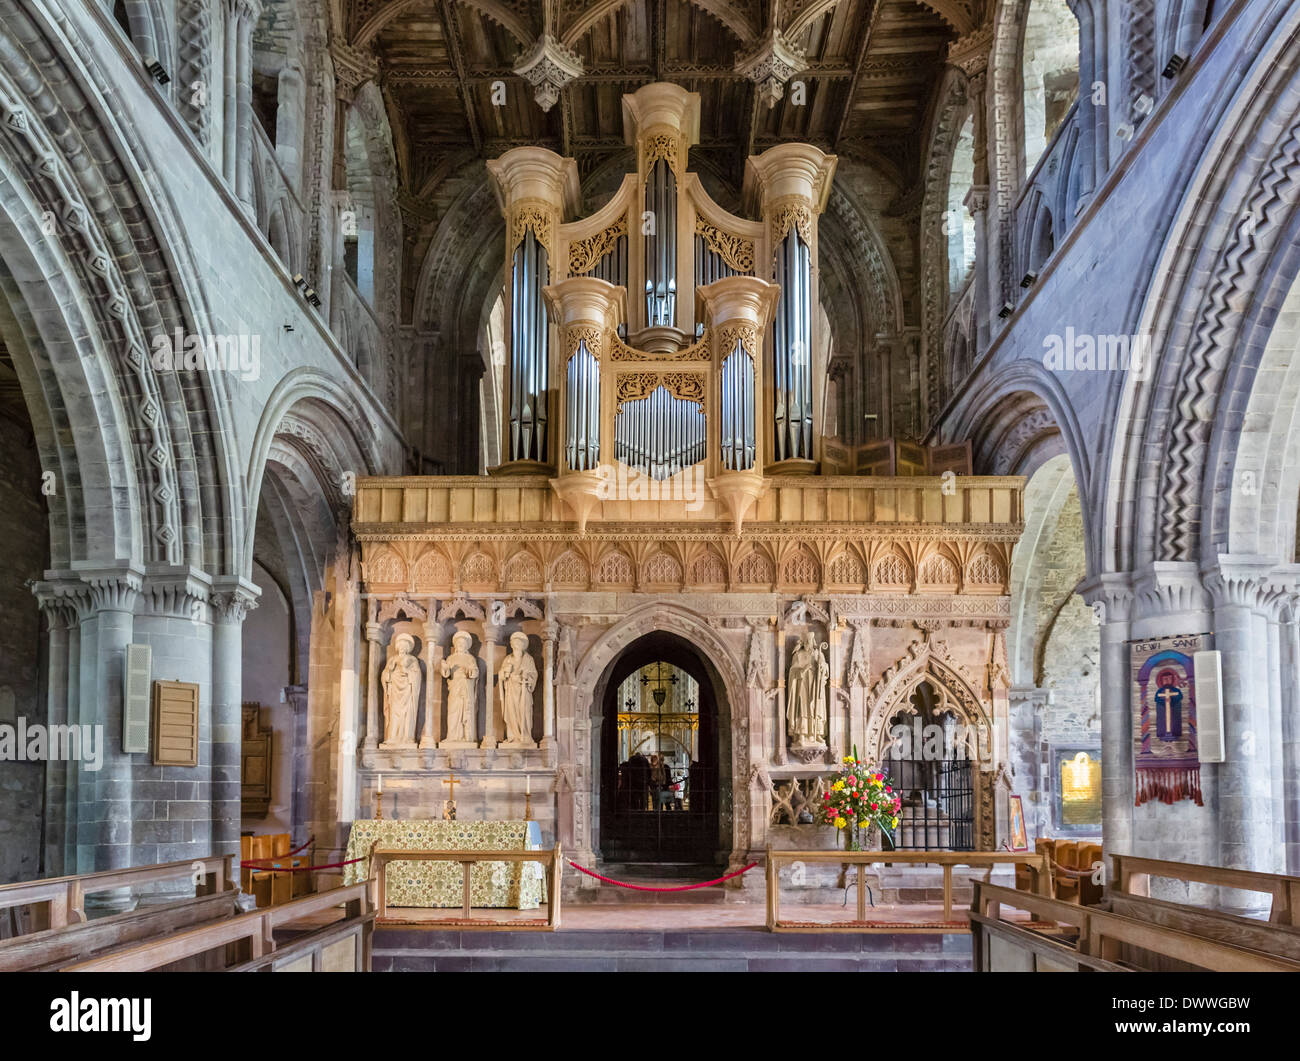 The organ in St David's Cathedral, St David's, Pembrokeshire, Wales, UK - Stock Image